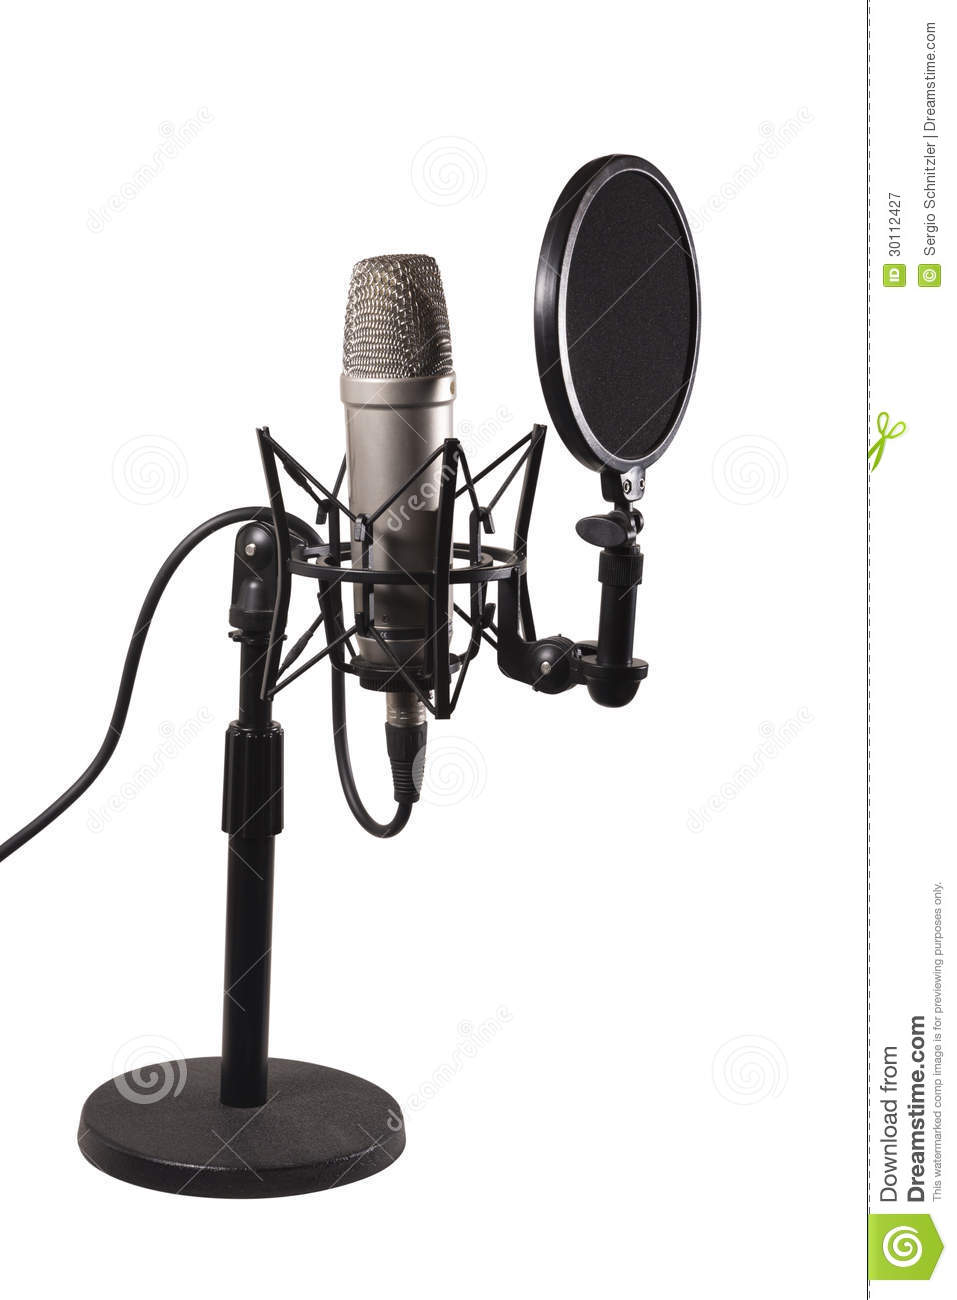 Radio Microphone Circuit Not Lossing Wiring Diagram Jack Shack Desk Condenser Royalty Free Stock Photography Electret